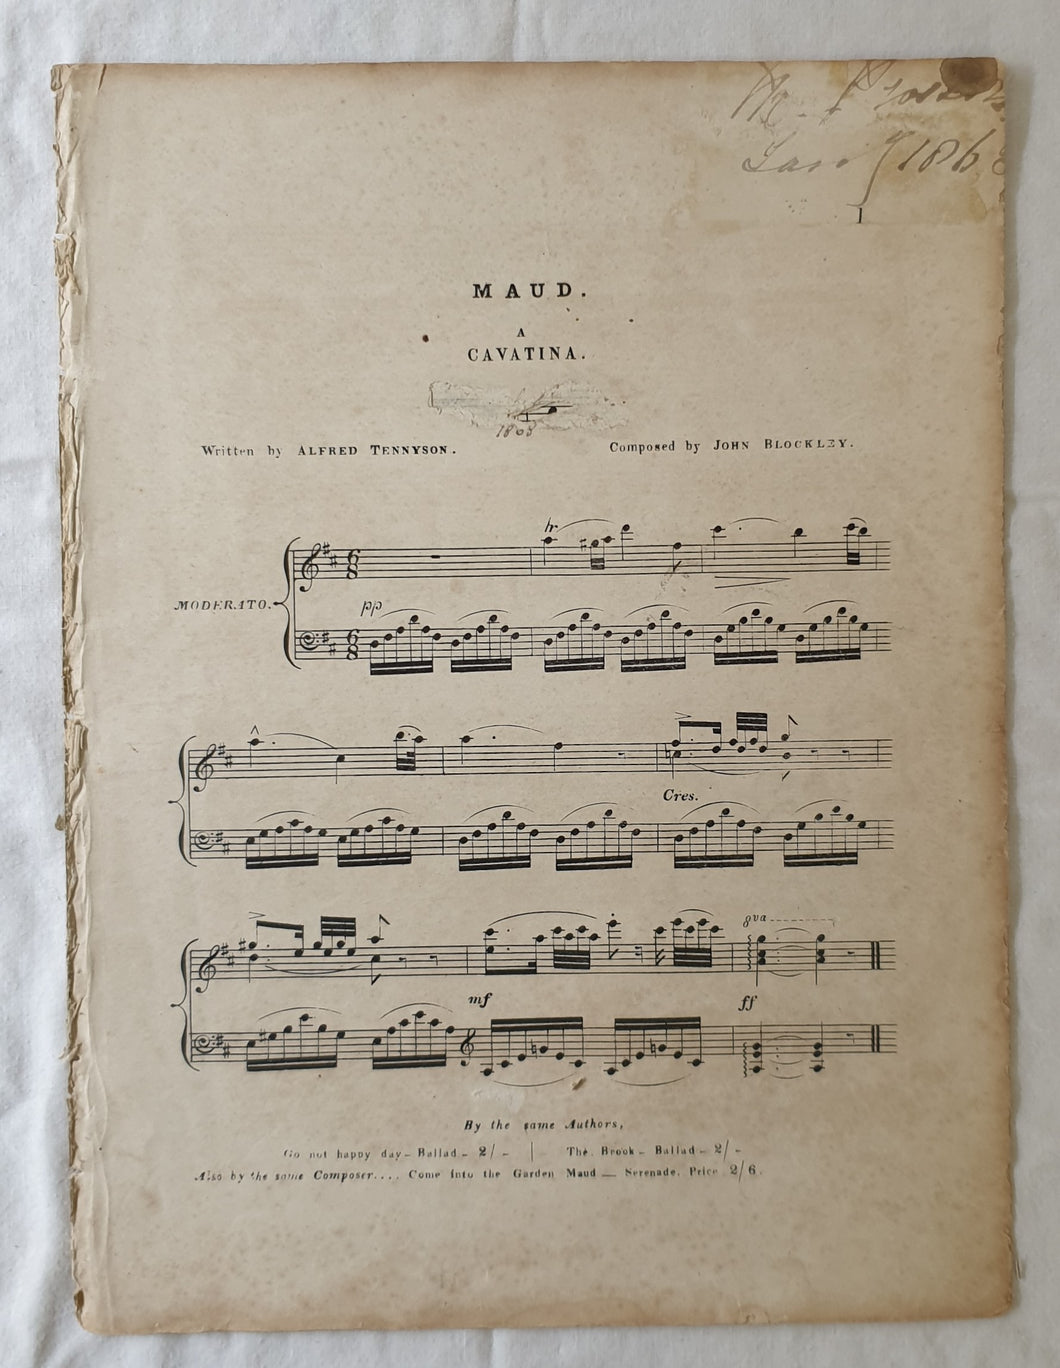 Maud  A Cavatina  Written by Alfred Tennyson  Composed by John Blockley